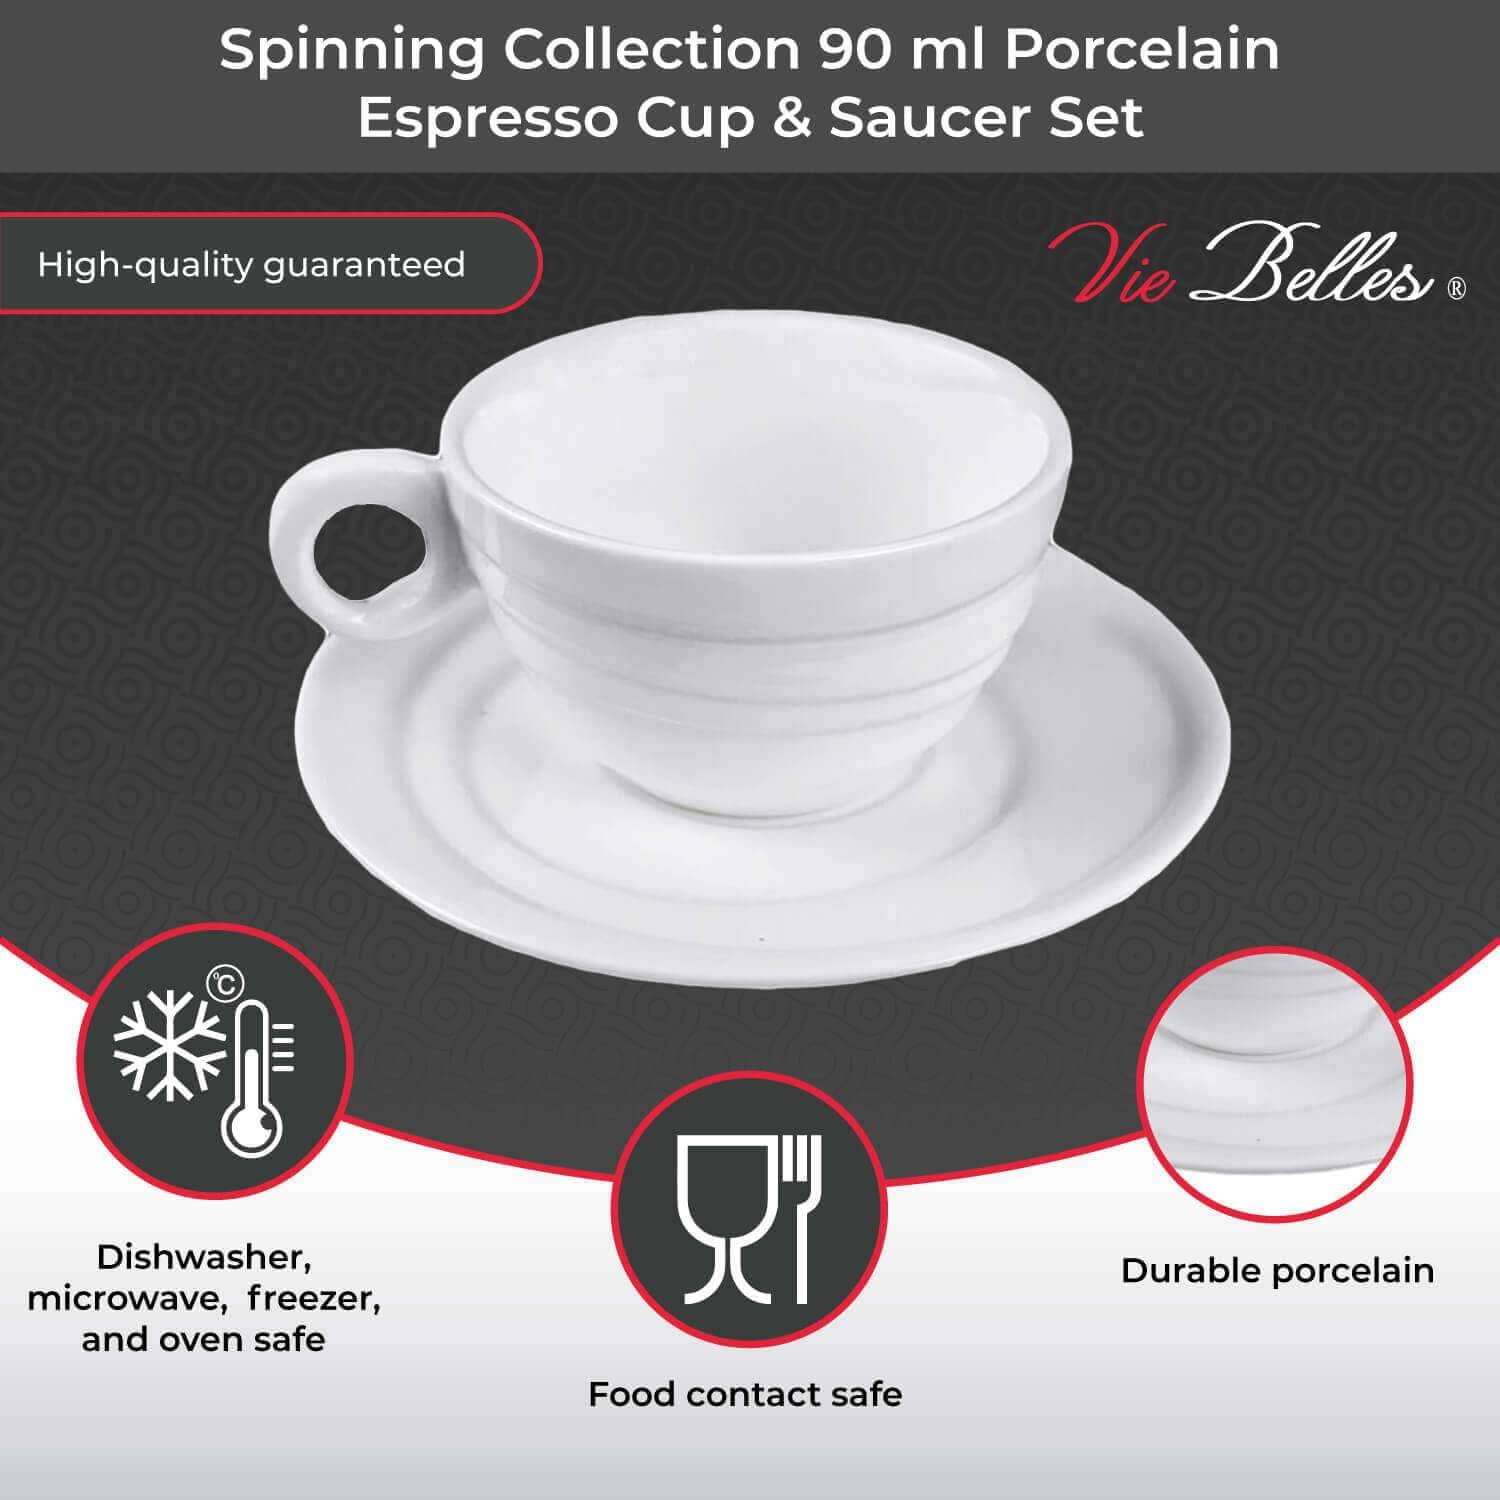 Vie Belles Coffee Mugs Spinning Collection 90 ml Porcelain Espresso Cup & Saucer Set